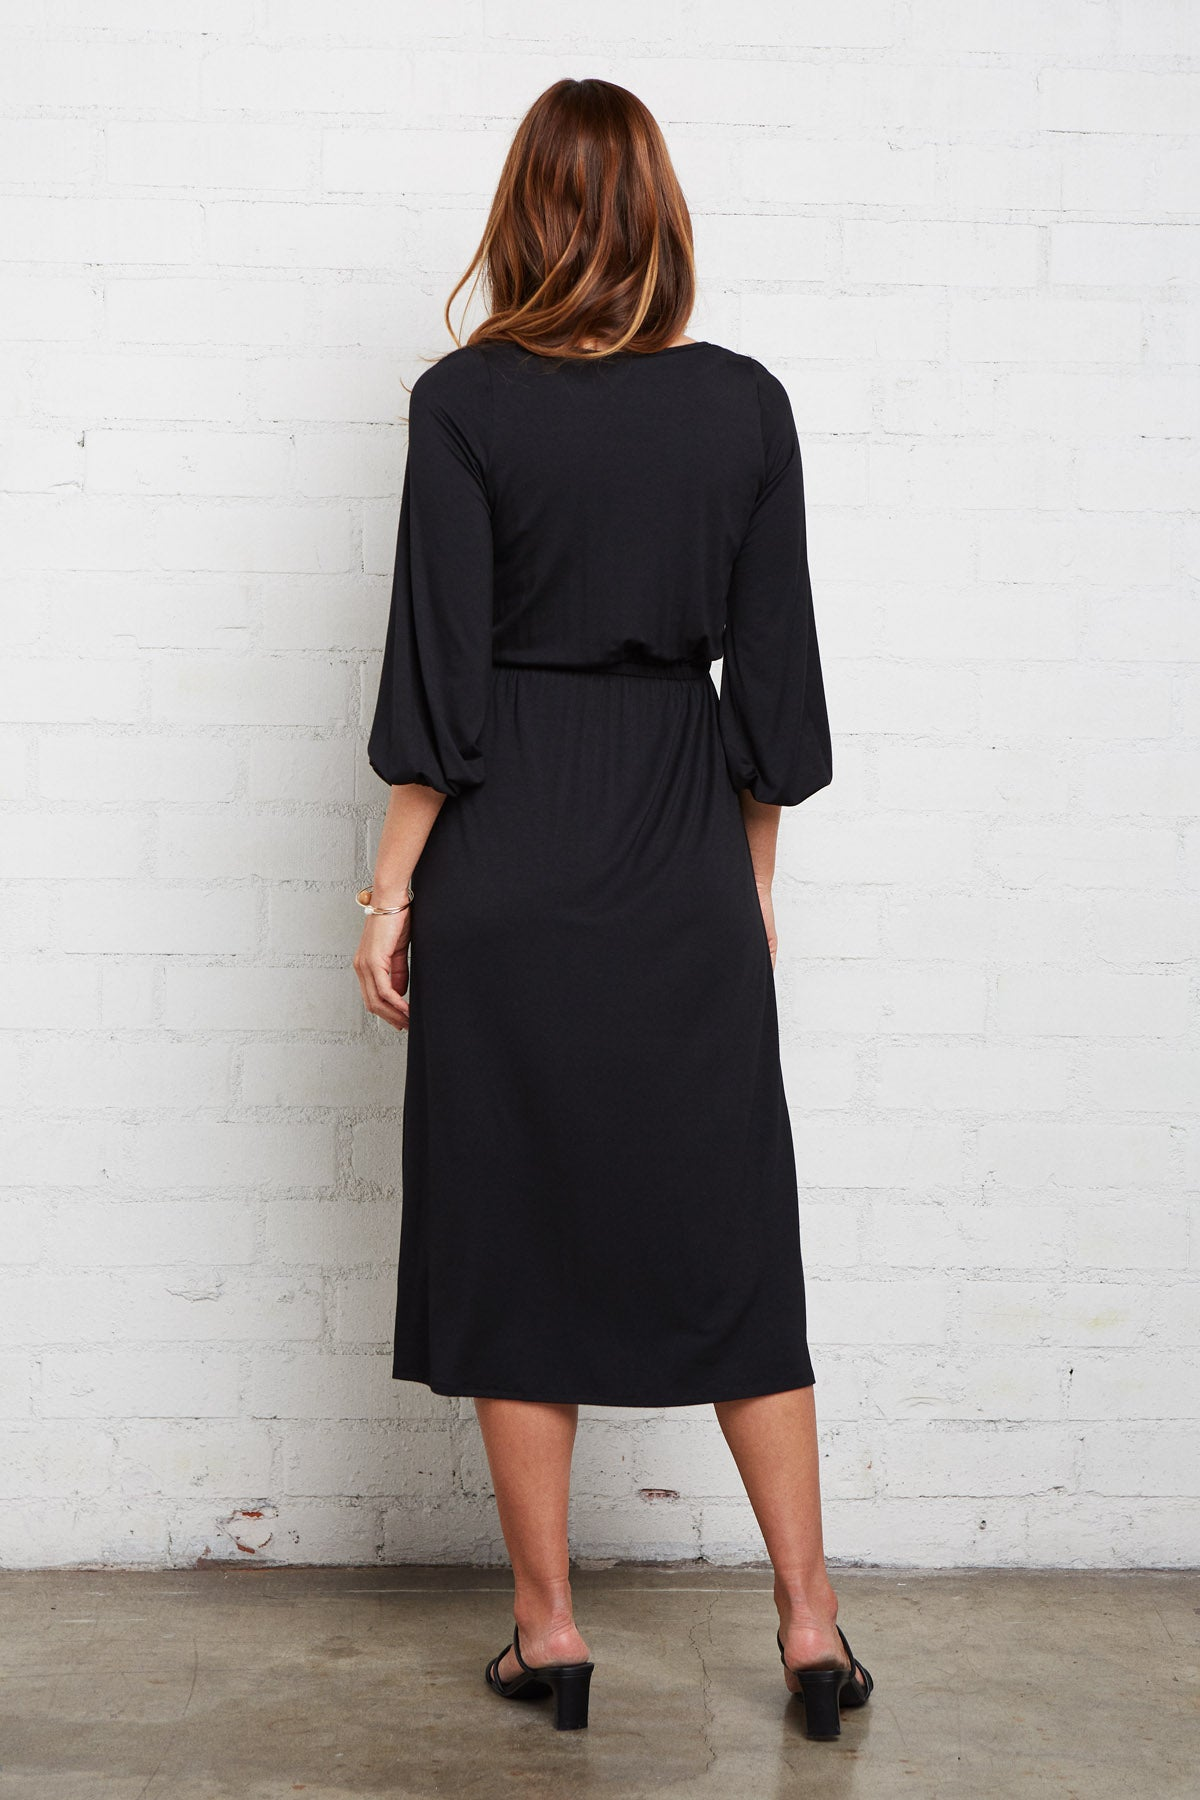 Margo Dress - Black, Maternity